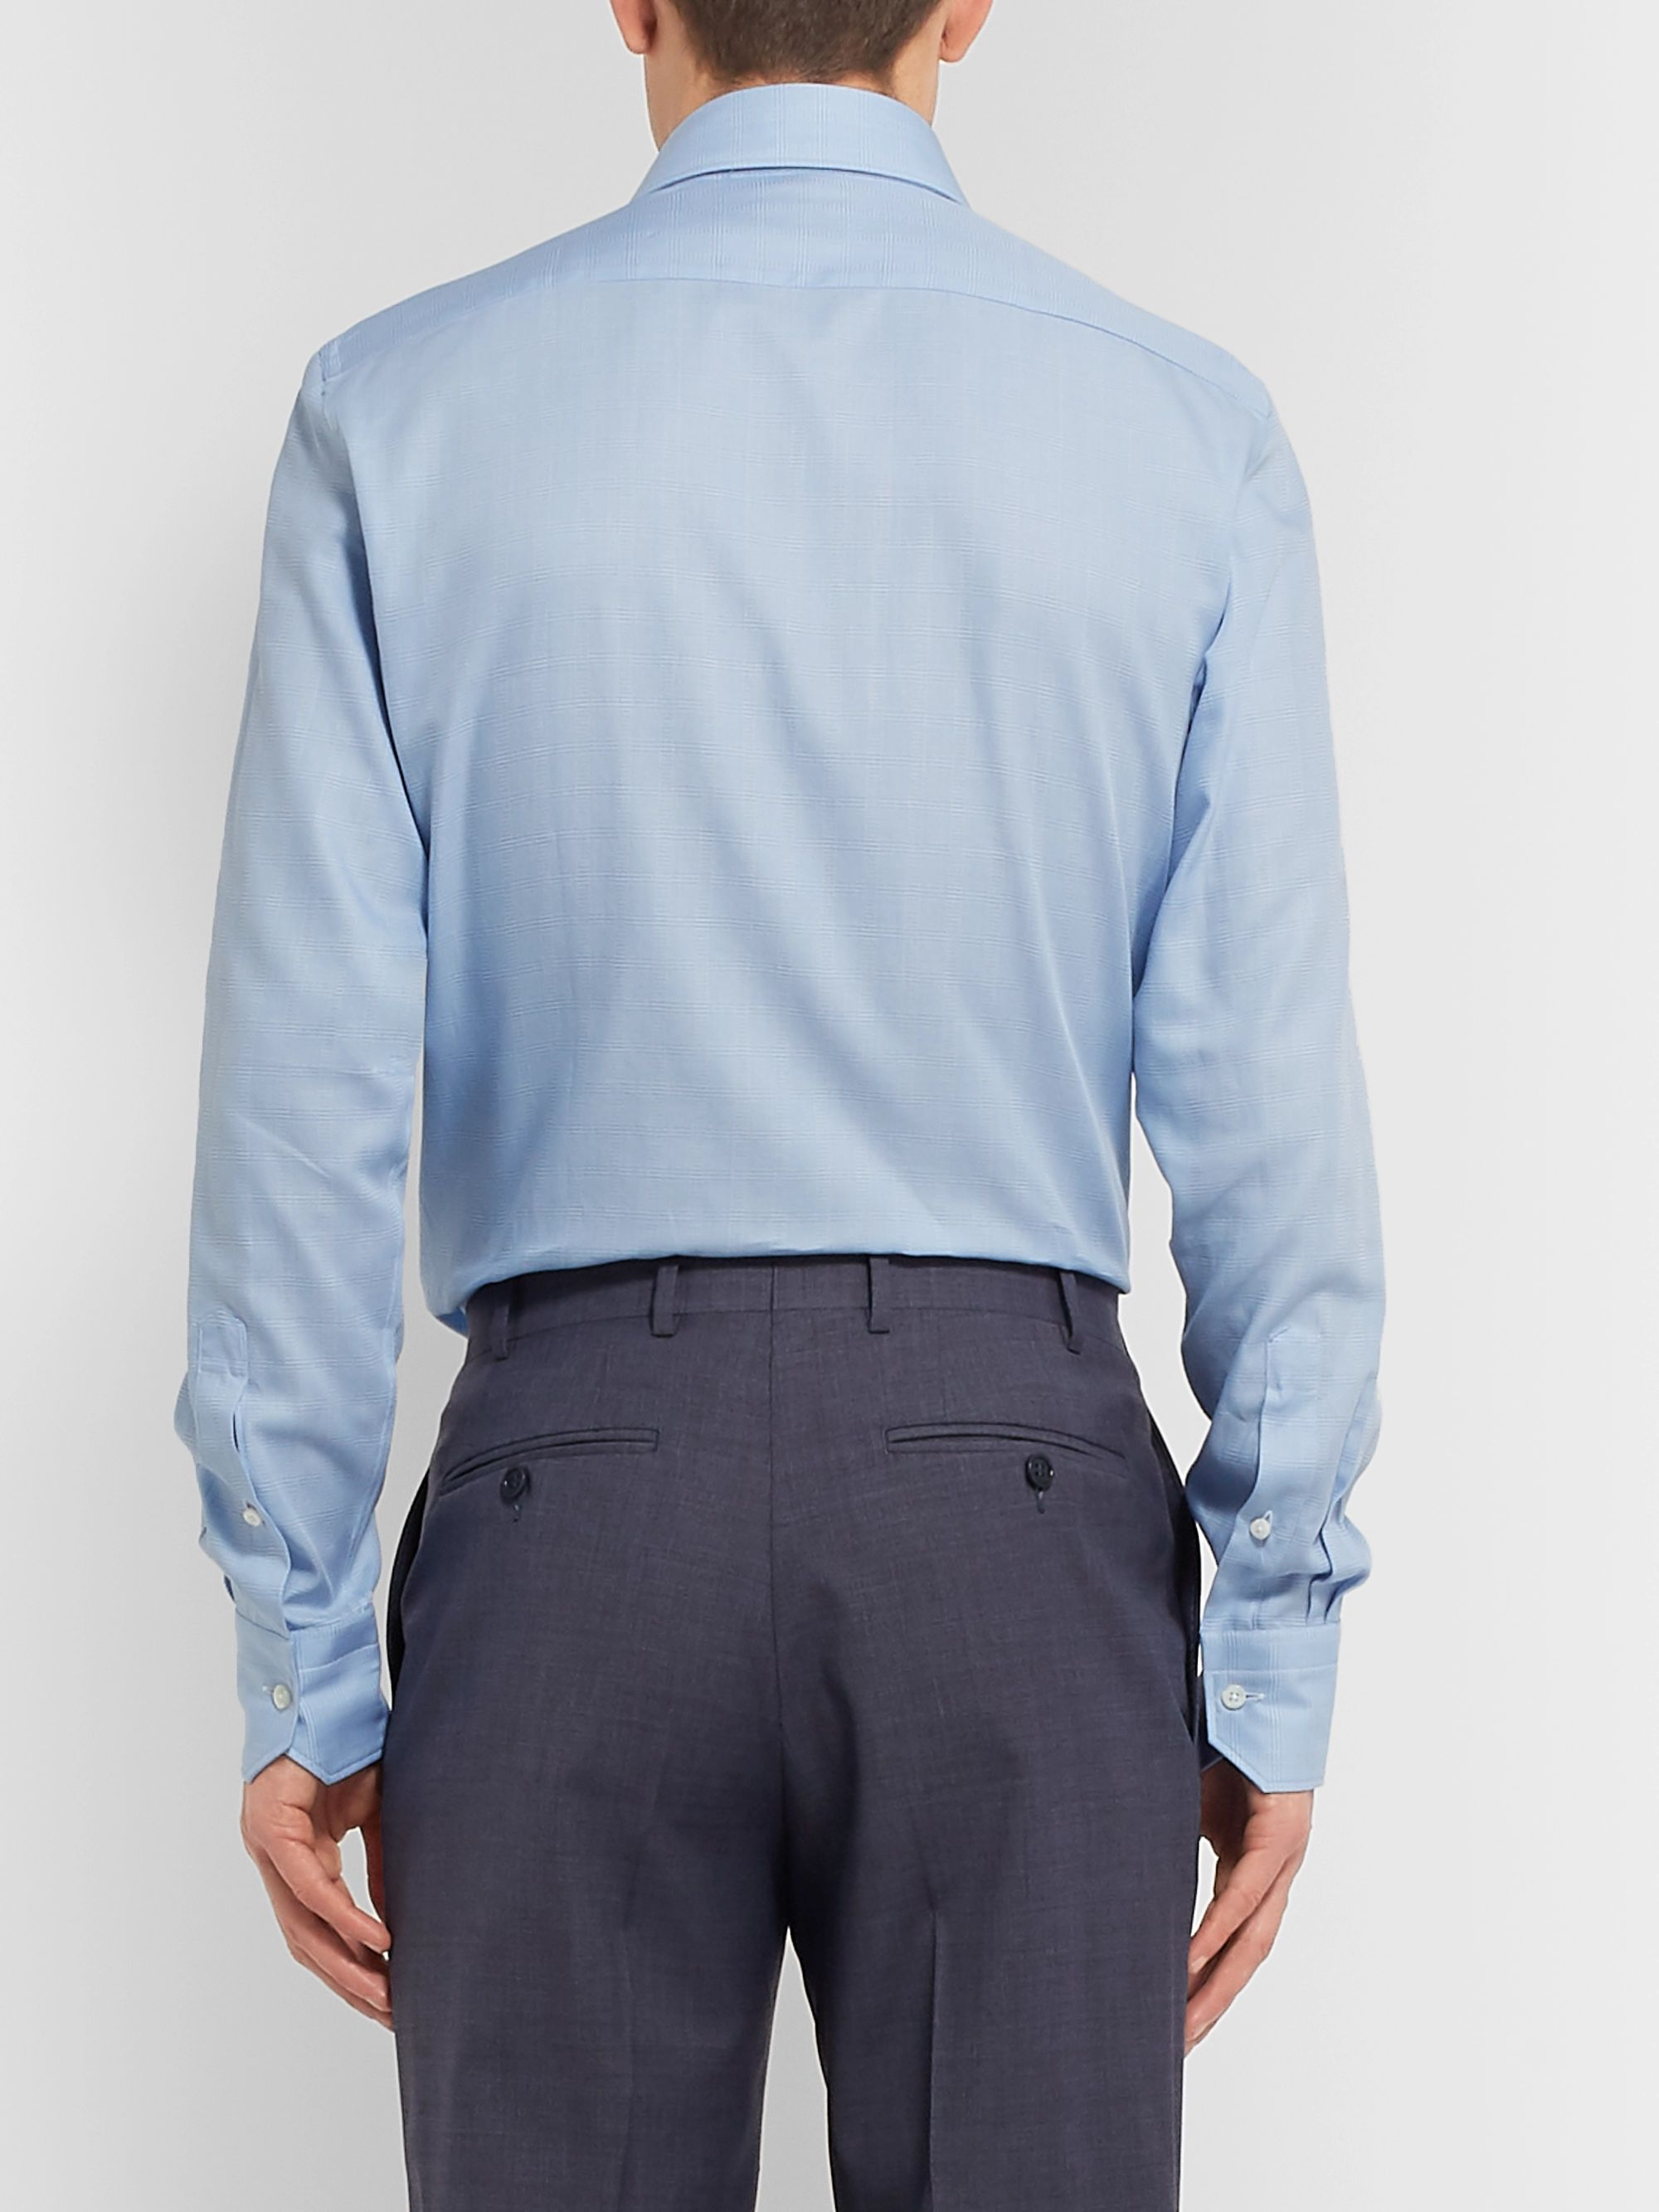 ERMENEGILDO ZEGNA Light-Blue Cutaway-Collar Checked Cotton Shirt